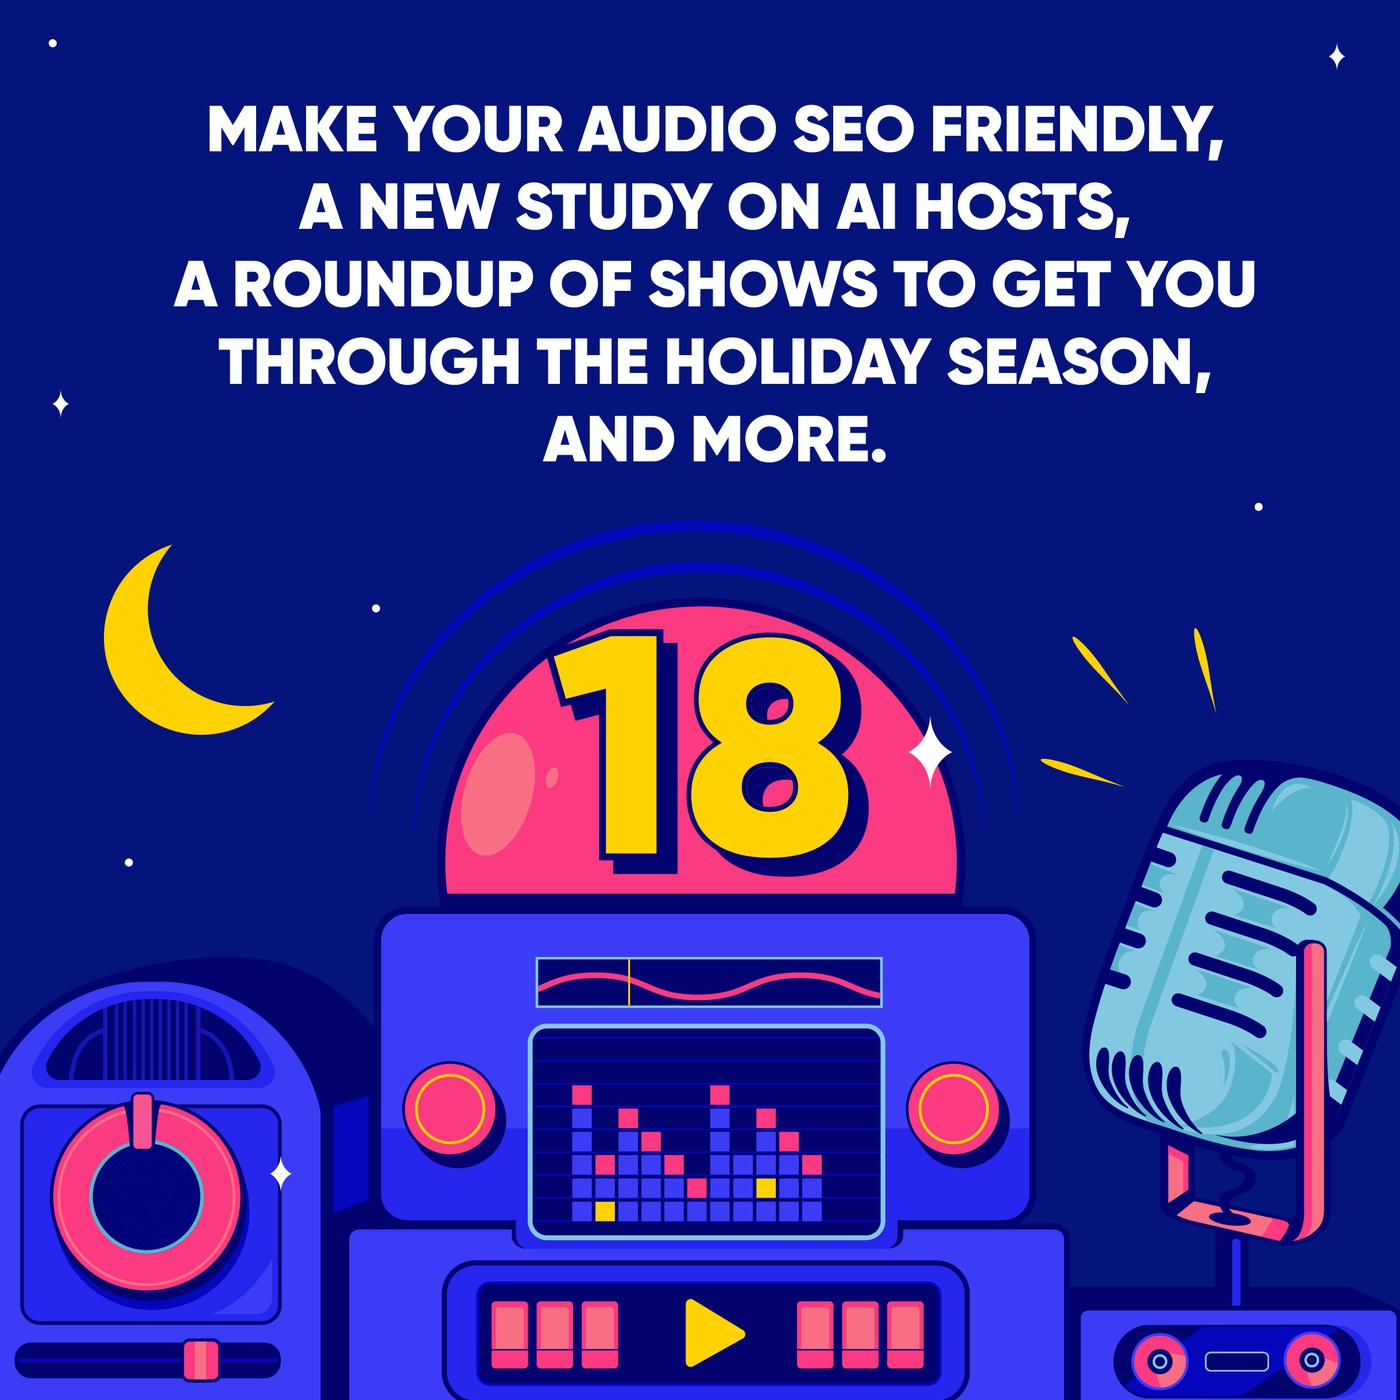 Make your Audio SEO Friendly, a New Study on AI Hosts, a Roundup of Shows to get you Through the Holiday Season, and More.